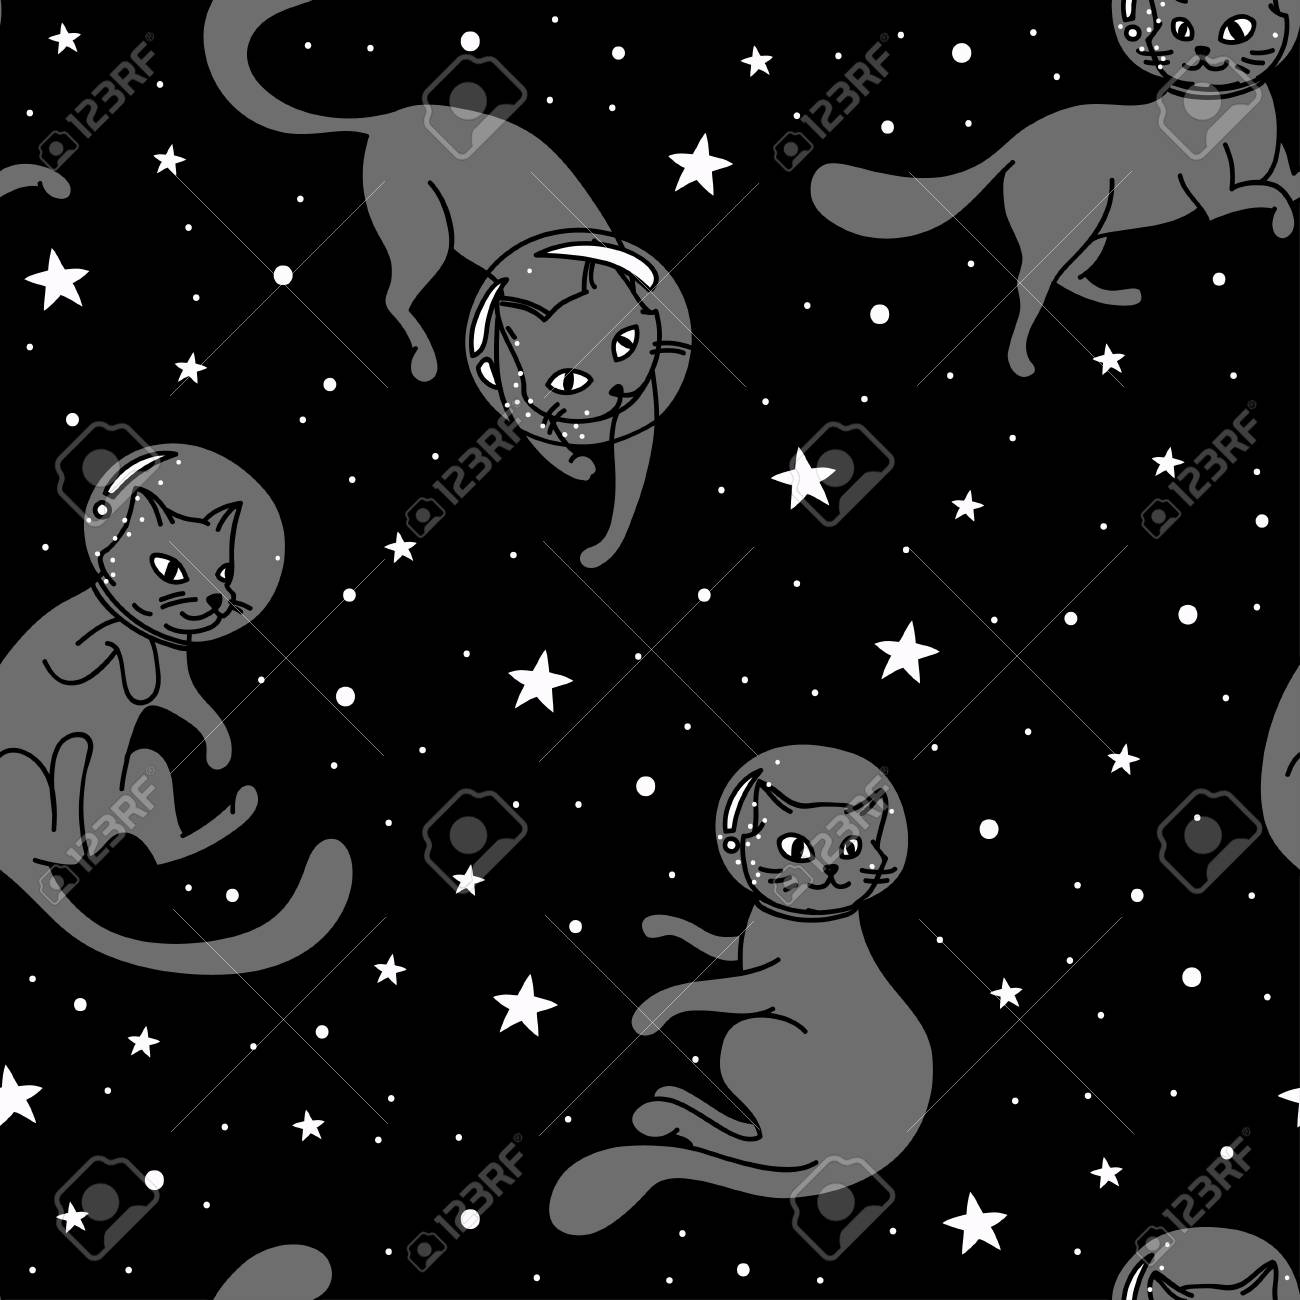 Cosmic Seamless Pattern Cute Doodle Cat Astronauts Floating In